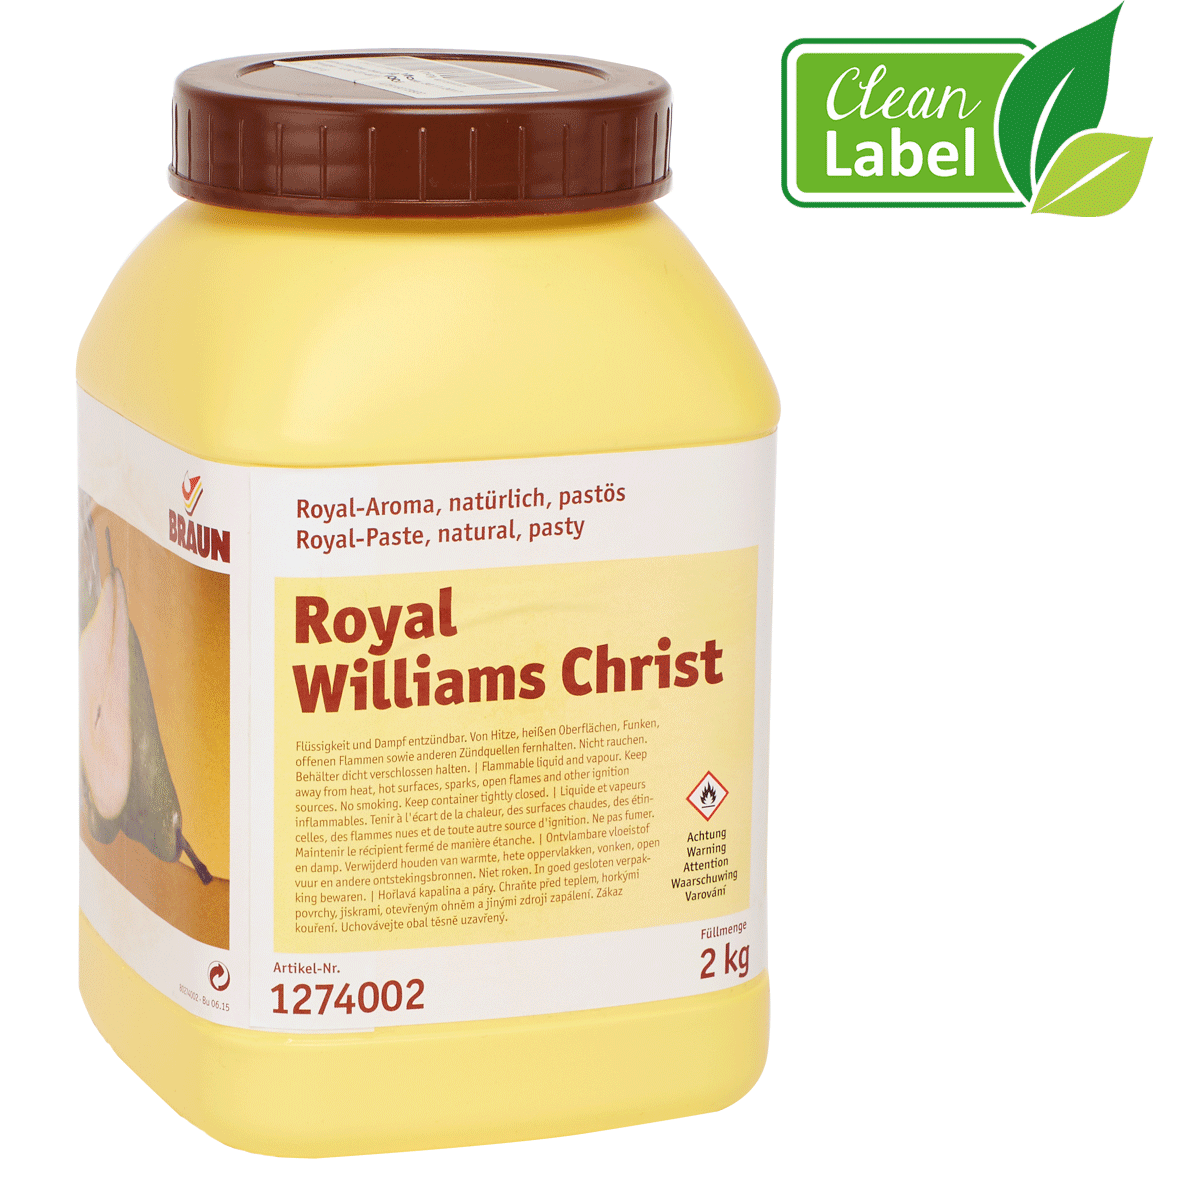 RoyalWilliams Christ